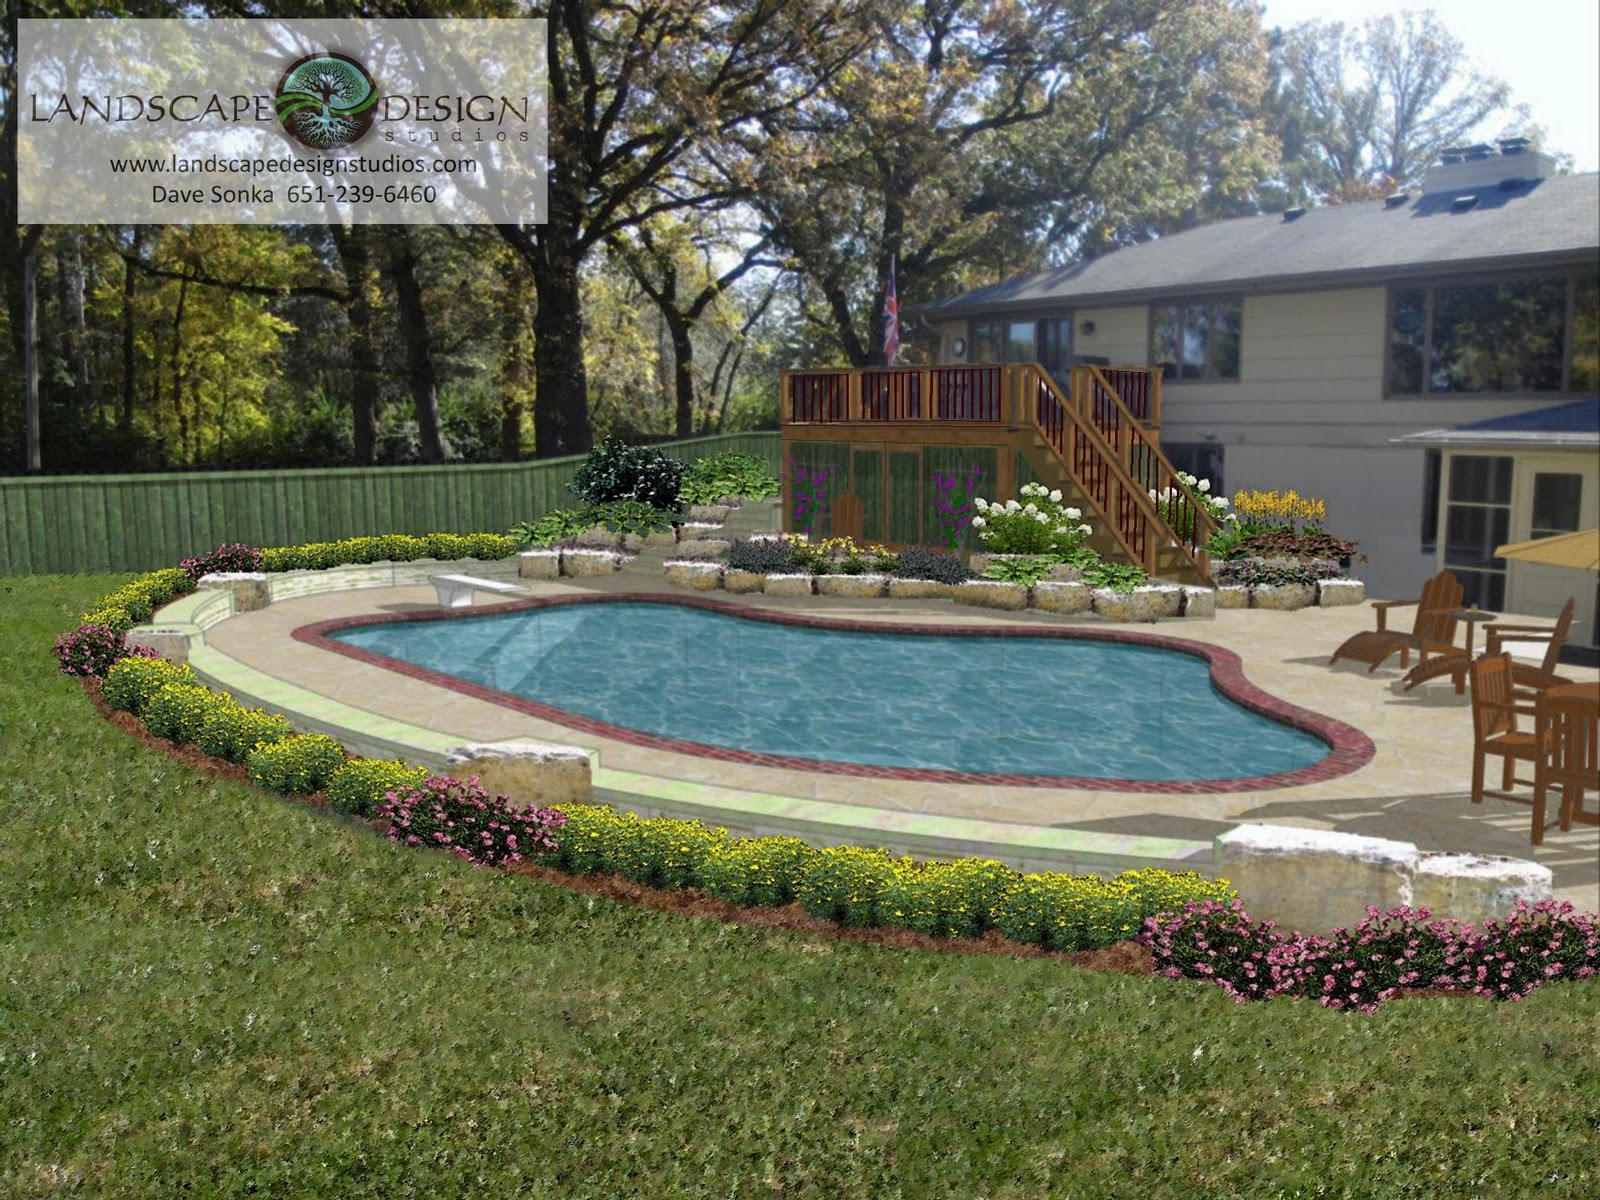 Landscaping area landscaping ideas around spa pools for Landscape design for pool areas